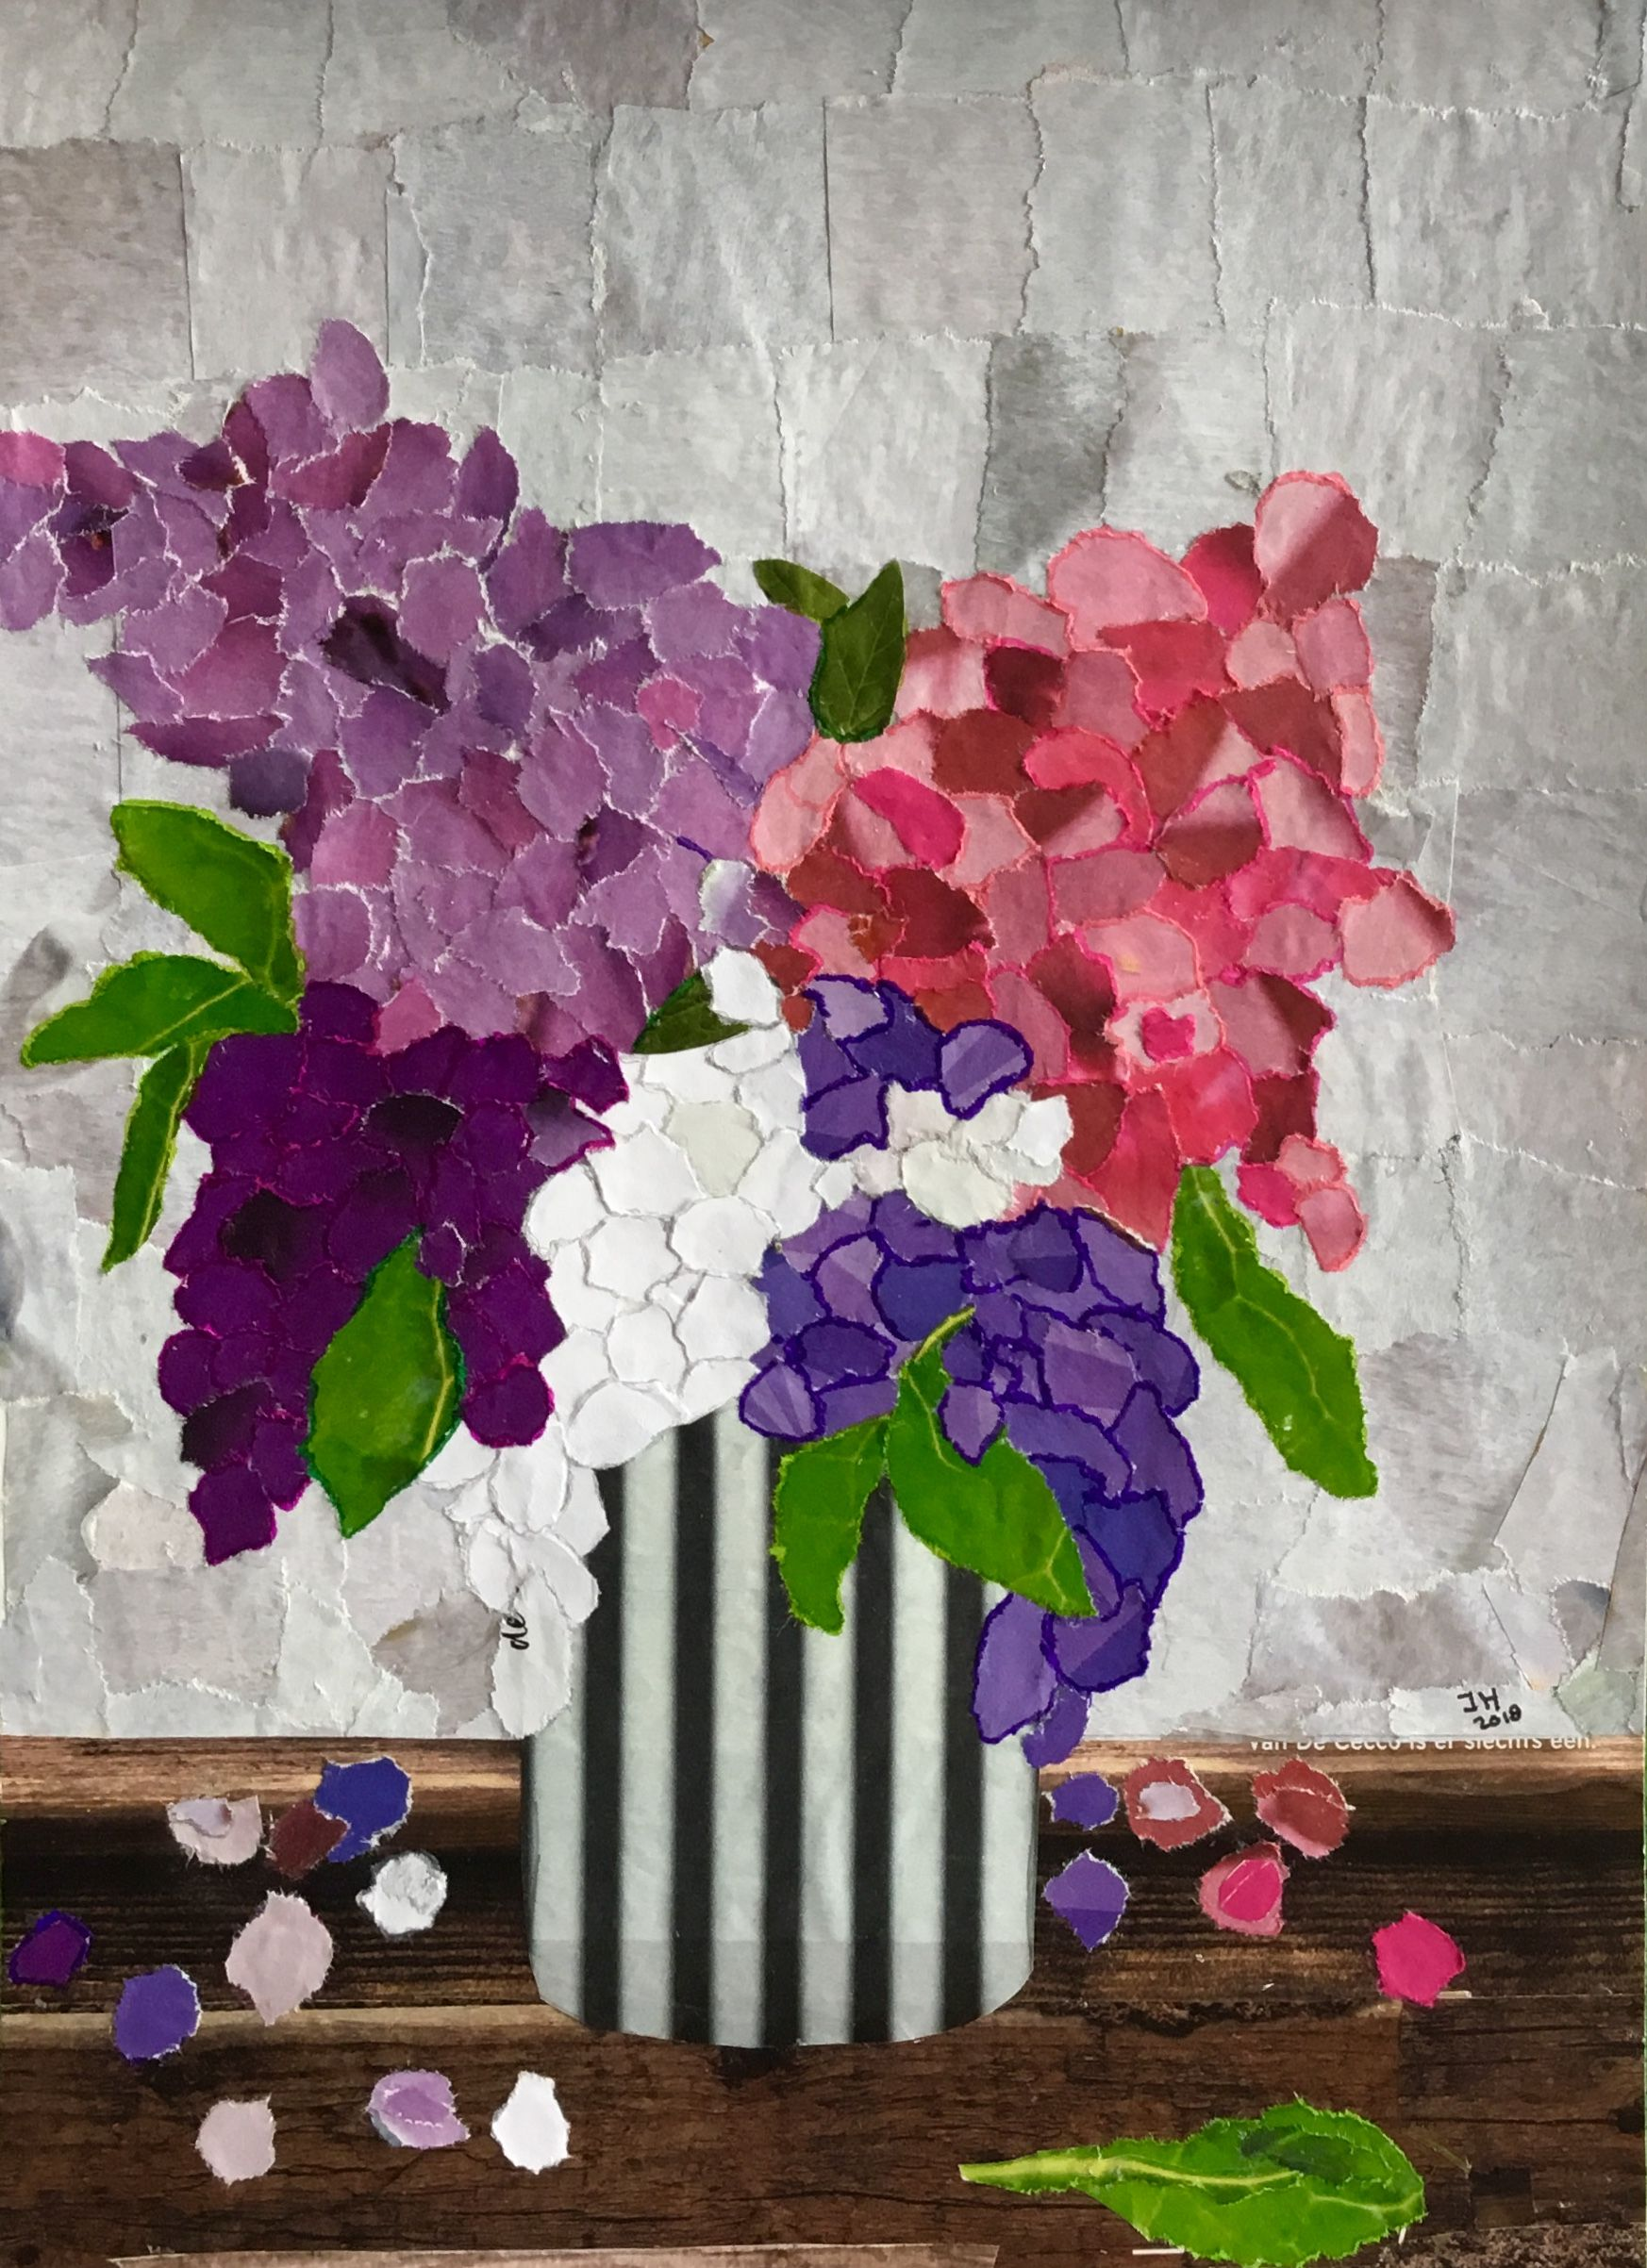 Torn Paper Collage Flowers Flowers Flowers Pinterest Collage